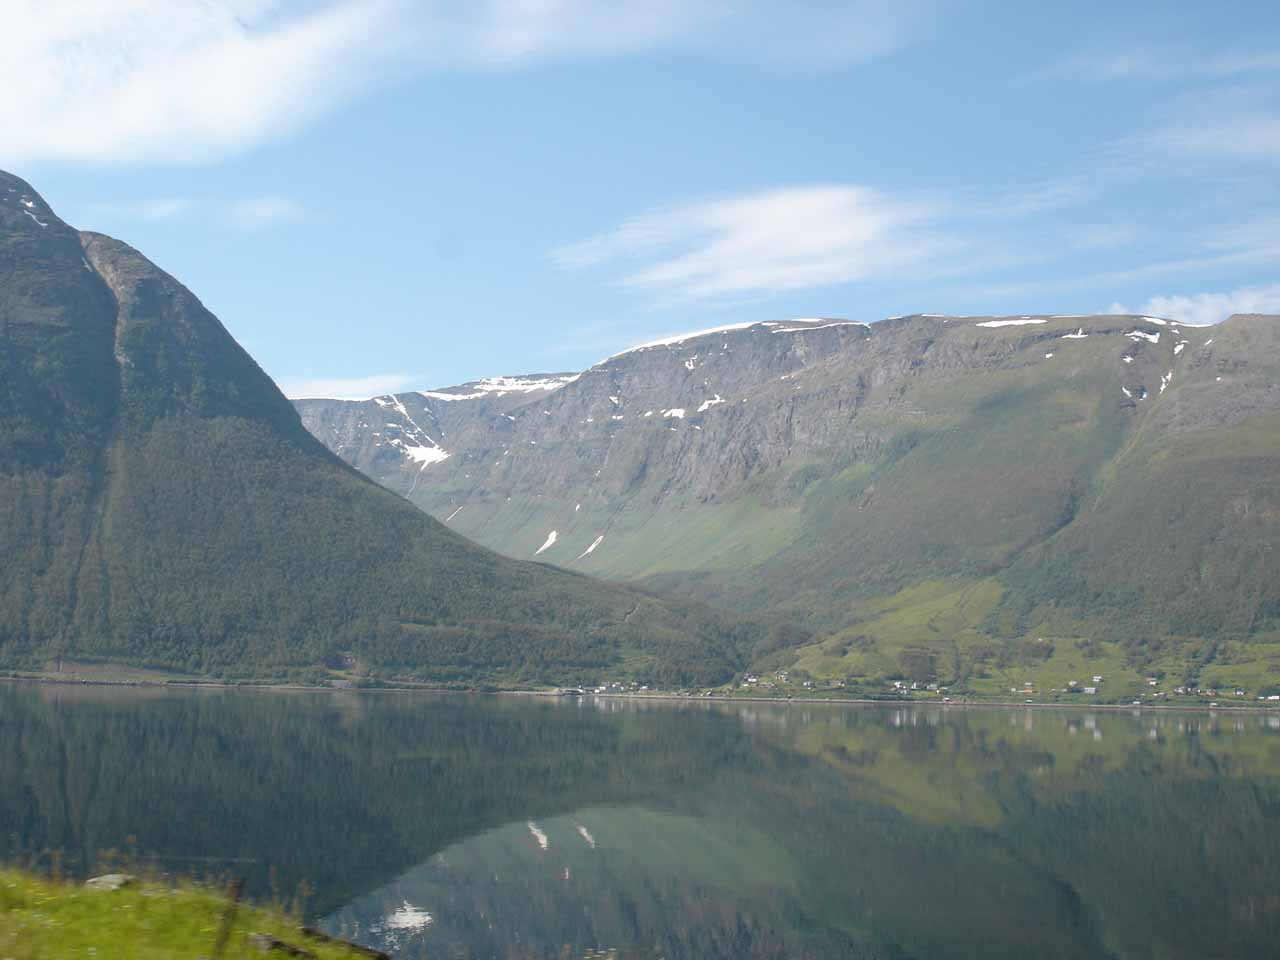 Another thing we saw before reaching Rovijokfossen was the scenic Kåfjorden fronted by the calm fjord and backed by a scenic valley